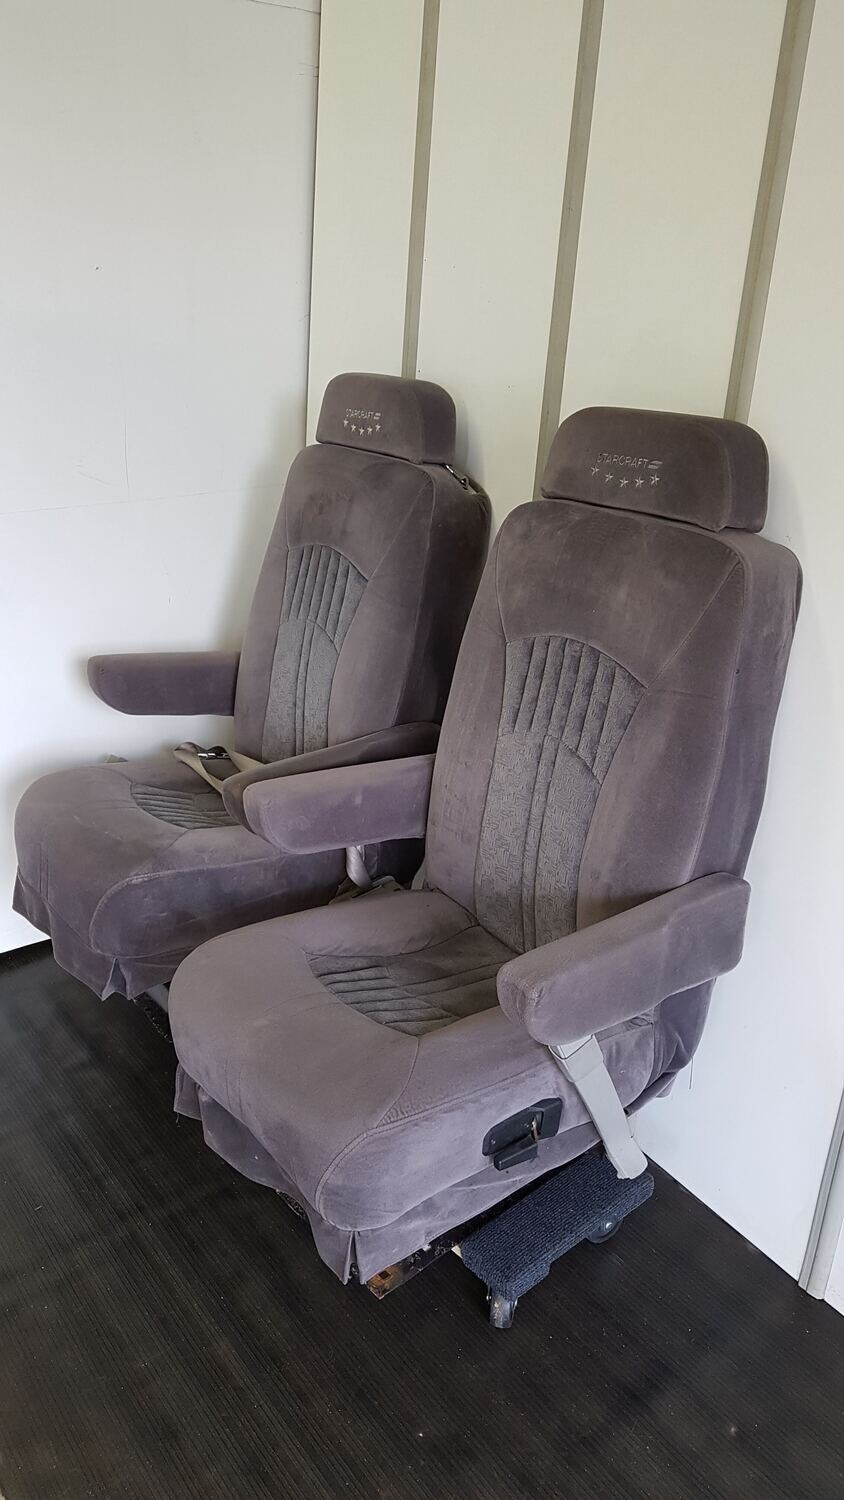 Swivel & Removable Seats for RVs